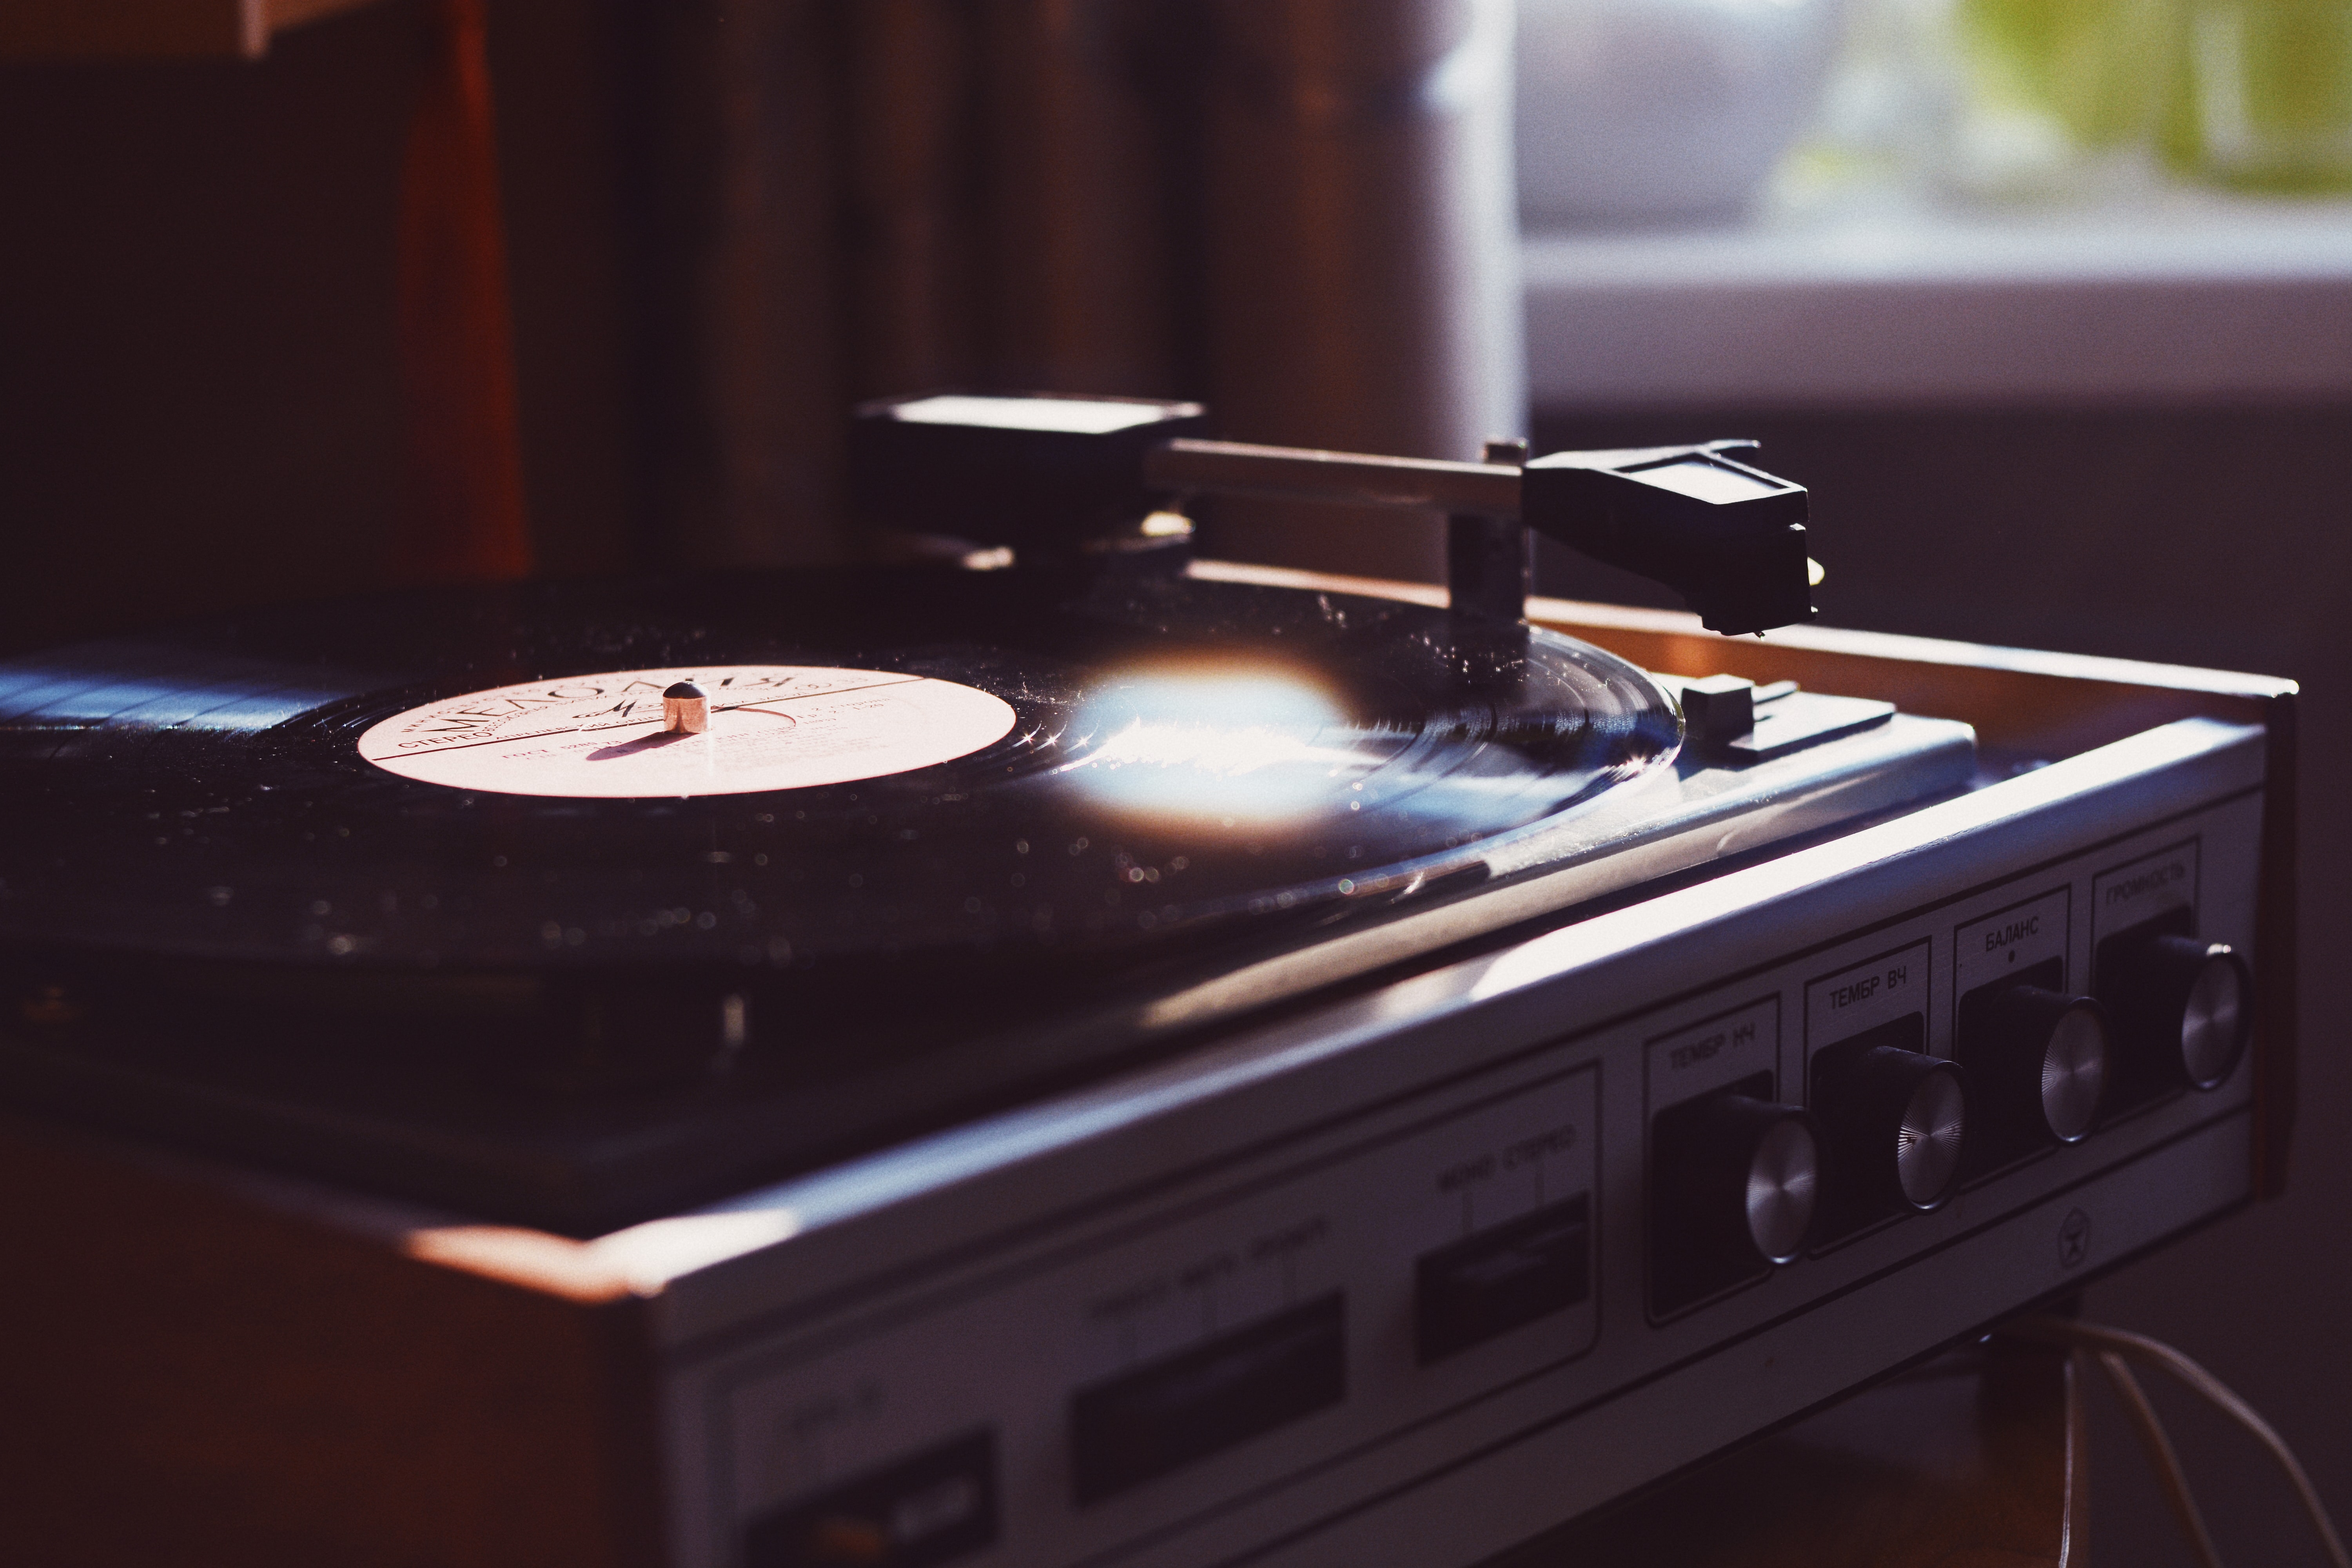 focus photo of vinyl player